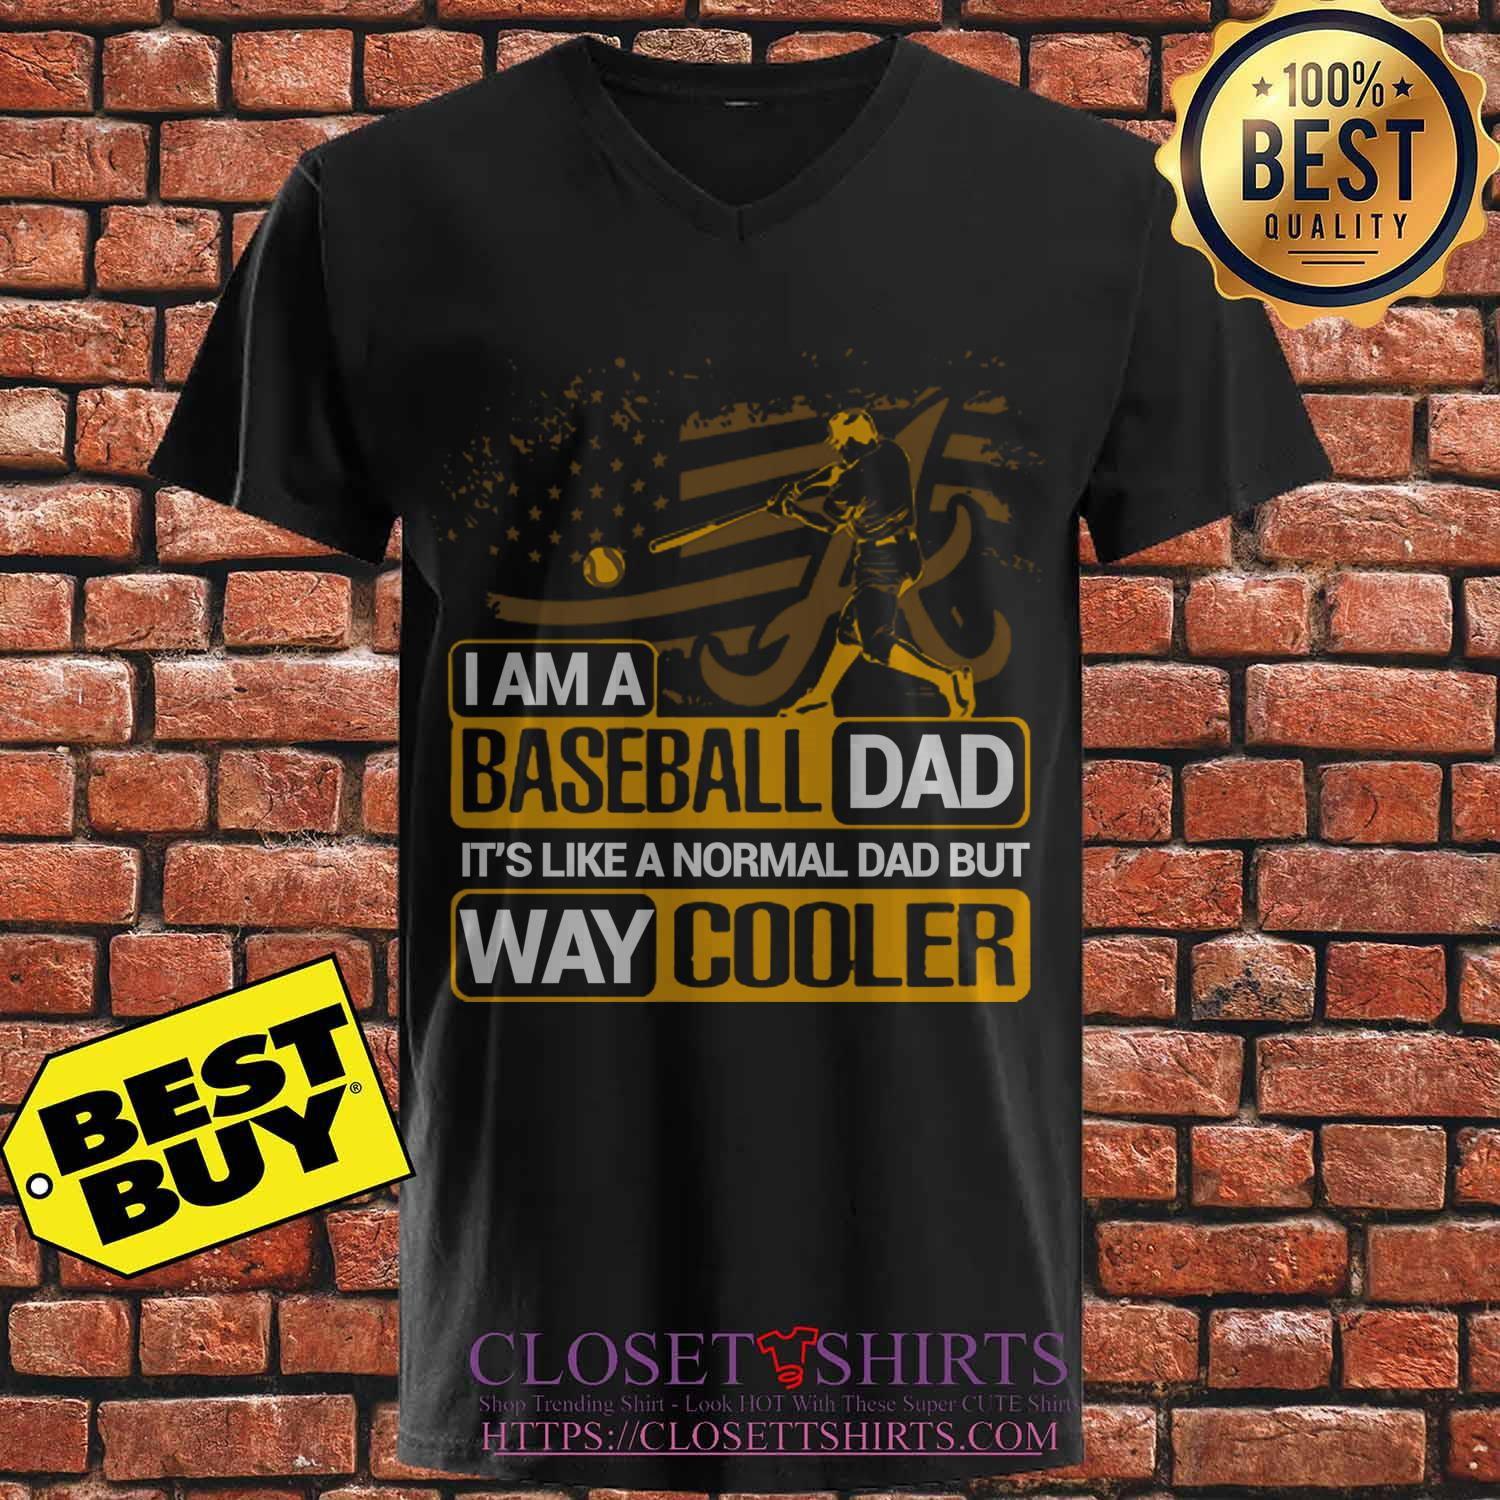 Alabama Crimson Tide I Am A Baseball Dad Way Cooler sweatshirt